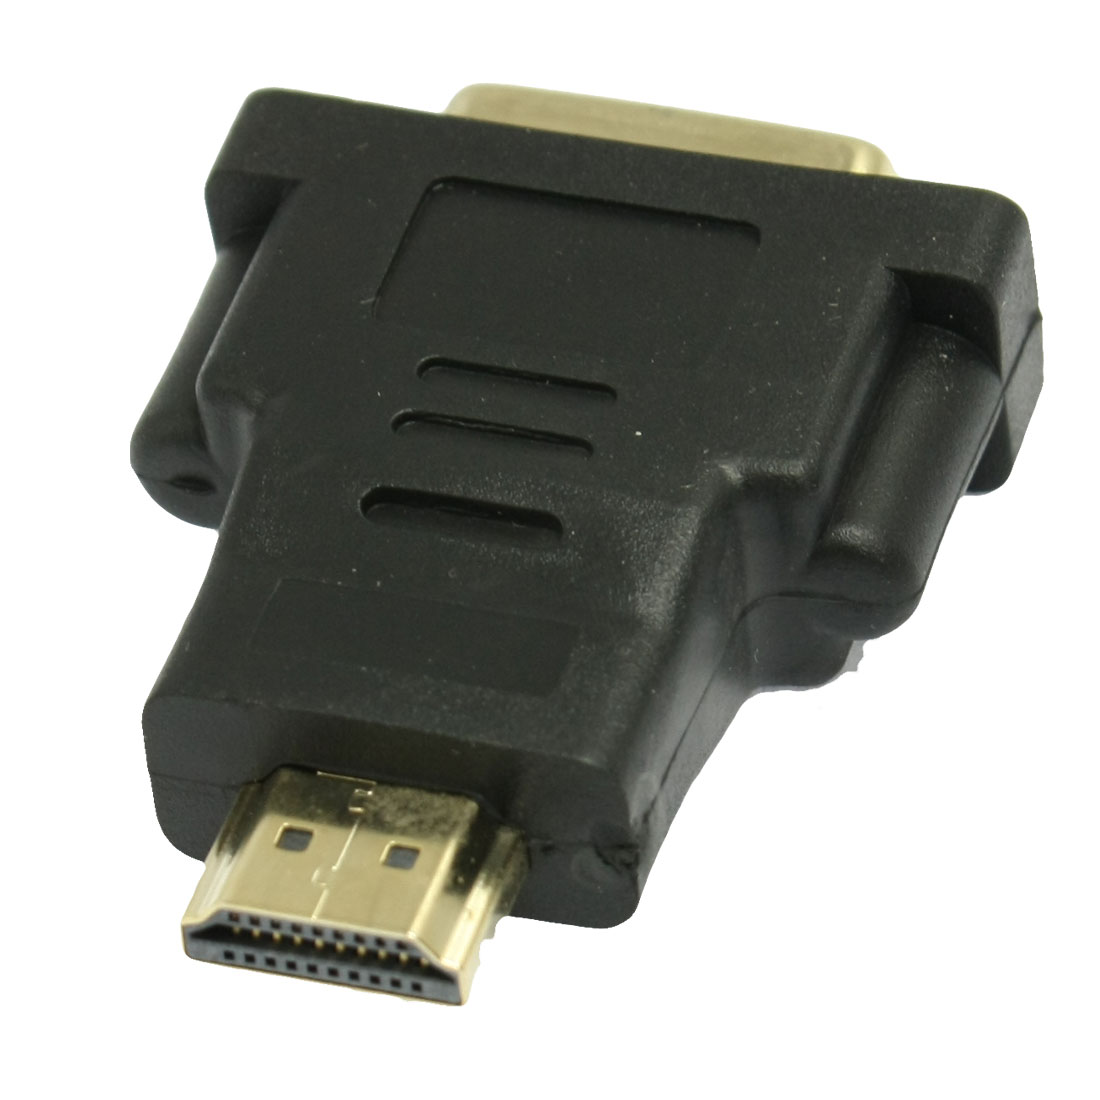 Black Gold Tone DVI Female to HDMI Male Adapter Audio Video Plug Connector